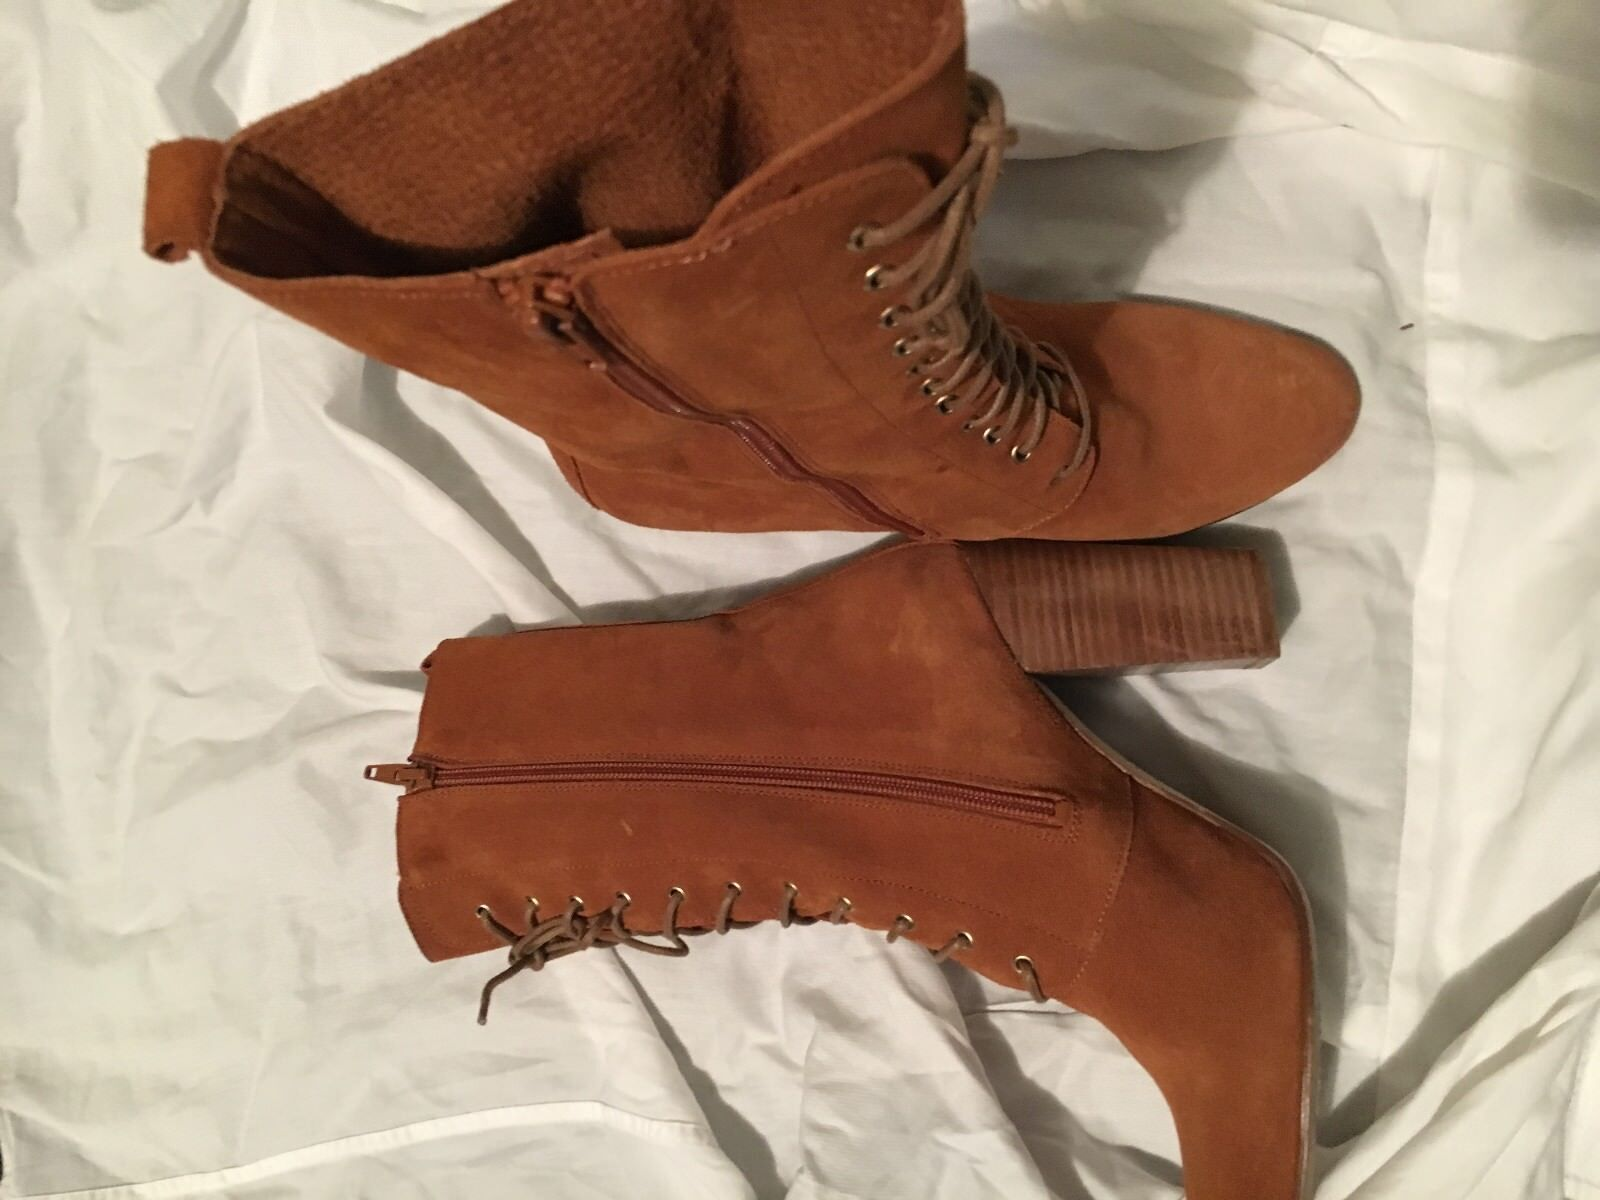 SIXTYSEVEN CARAMEL Swede LACE UP STYLISH Boot WOMEN Größe 40 STYLISH UP caed15